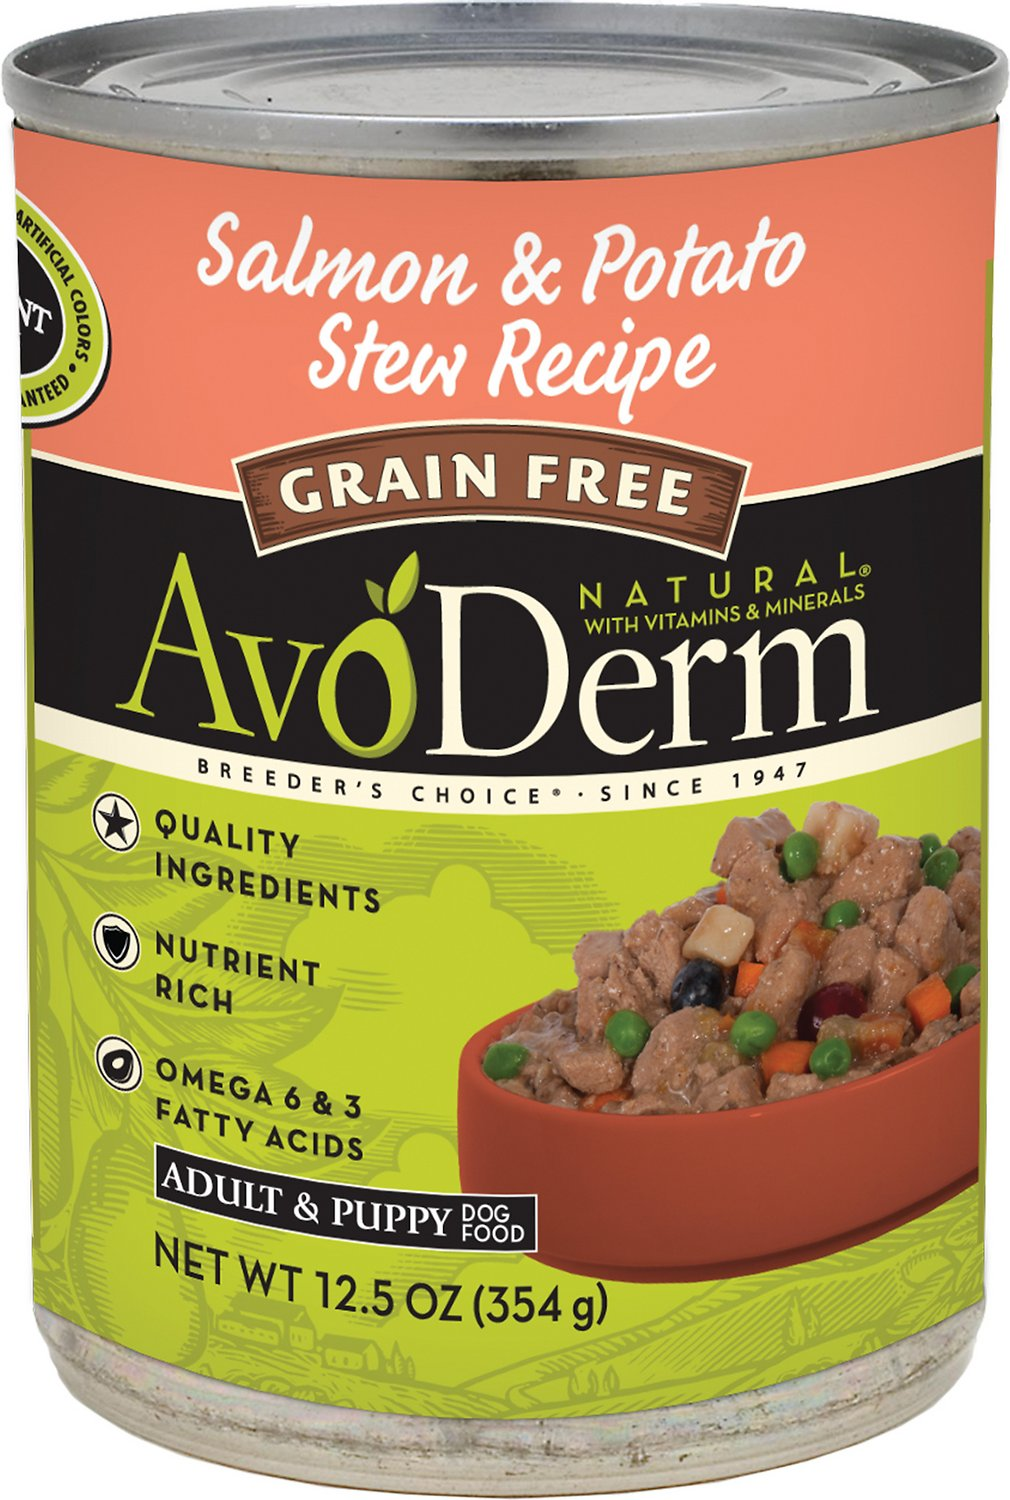 AvoDerm Natural Grain-Free Salmon & Potato Stew Recipe Adult & Puppy Canned Dog Food, 12.5-oz